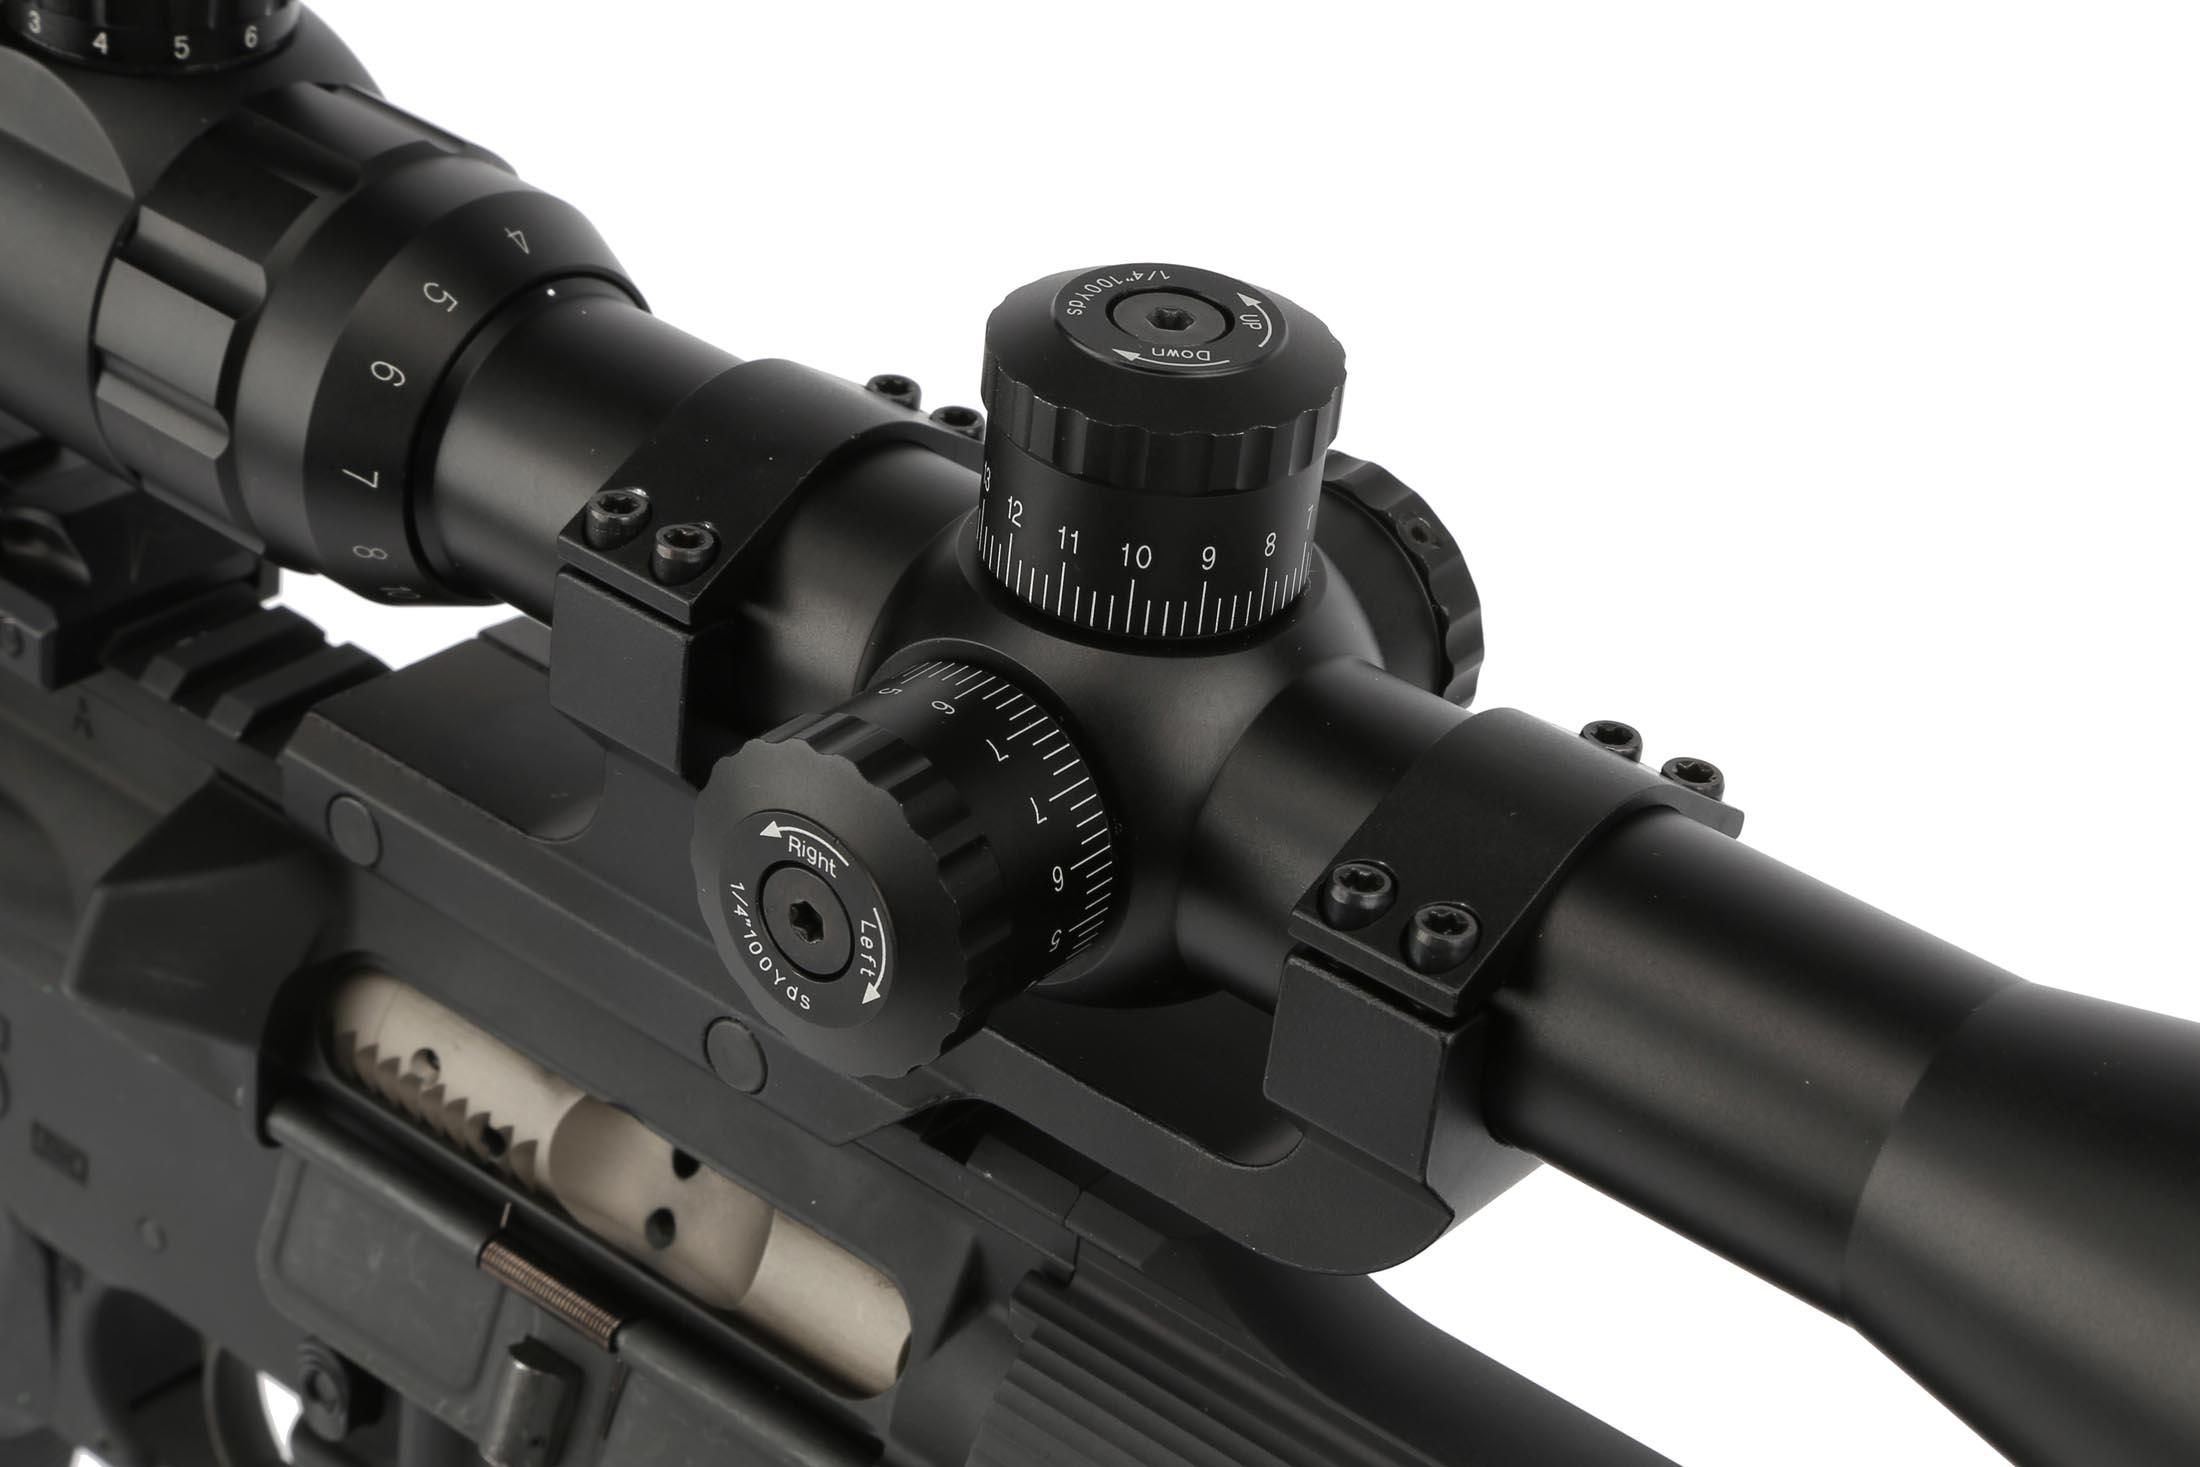 Primary Arms 4-16X44mm Riflescope - Illuminated Mil Dot Scope